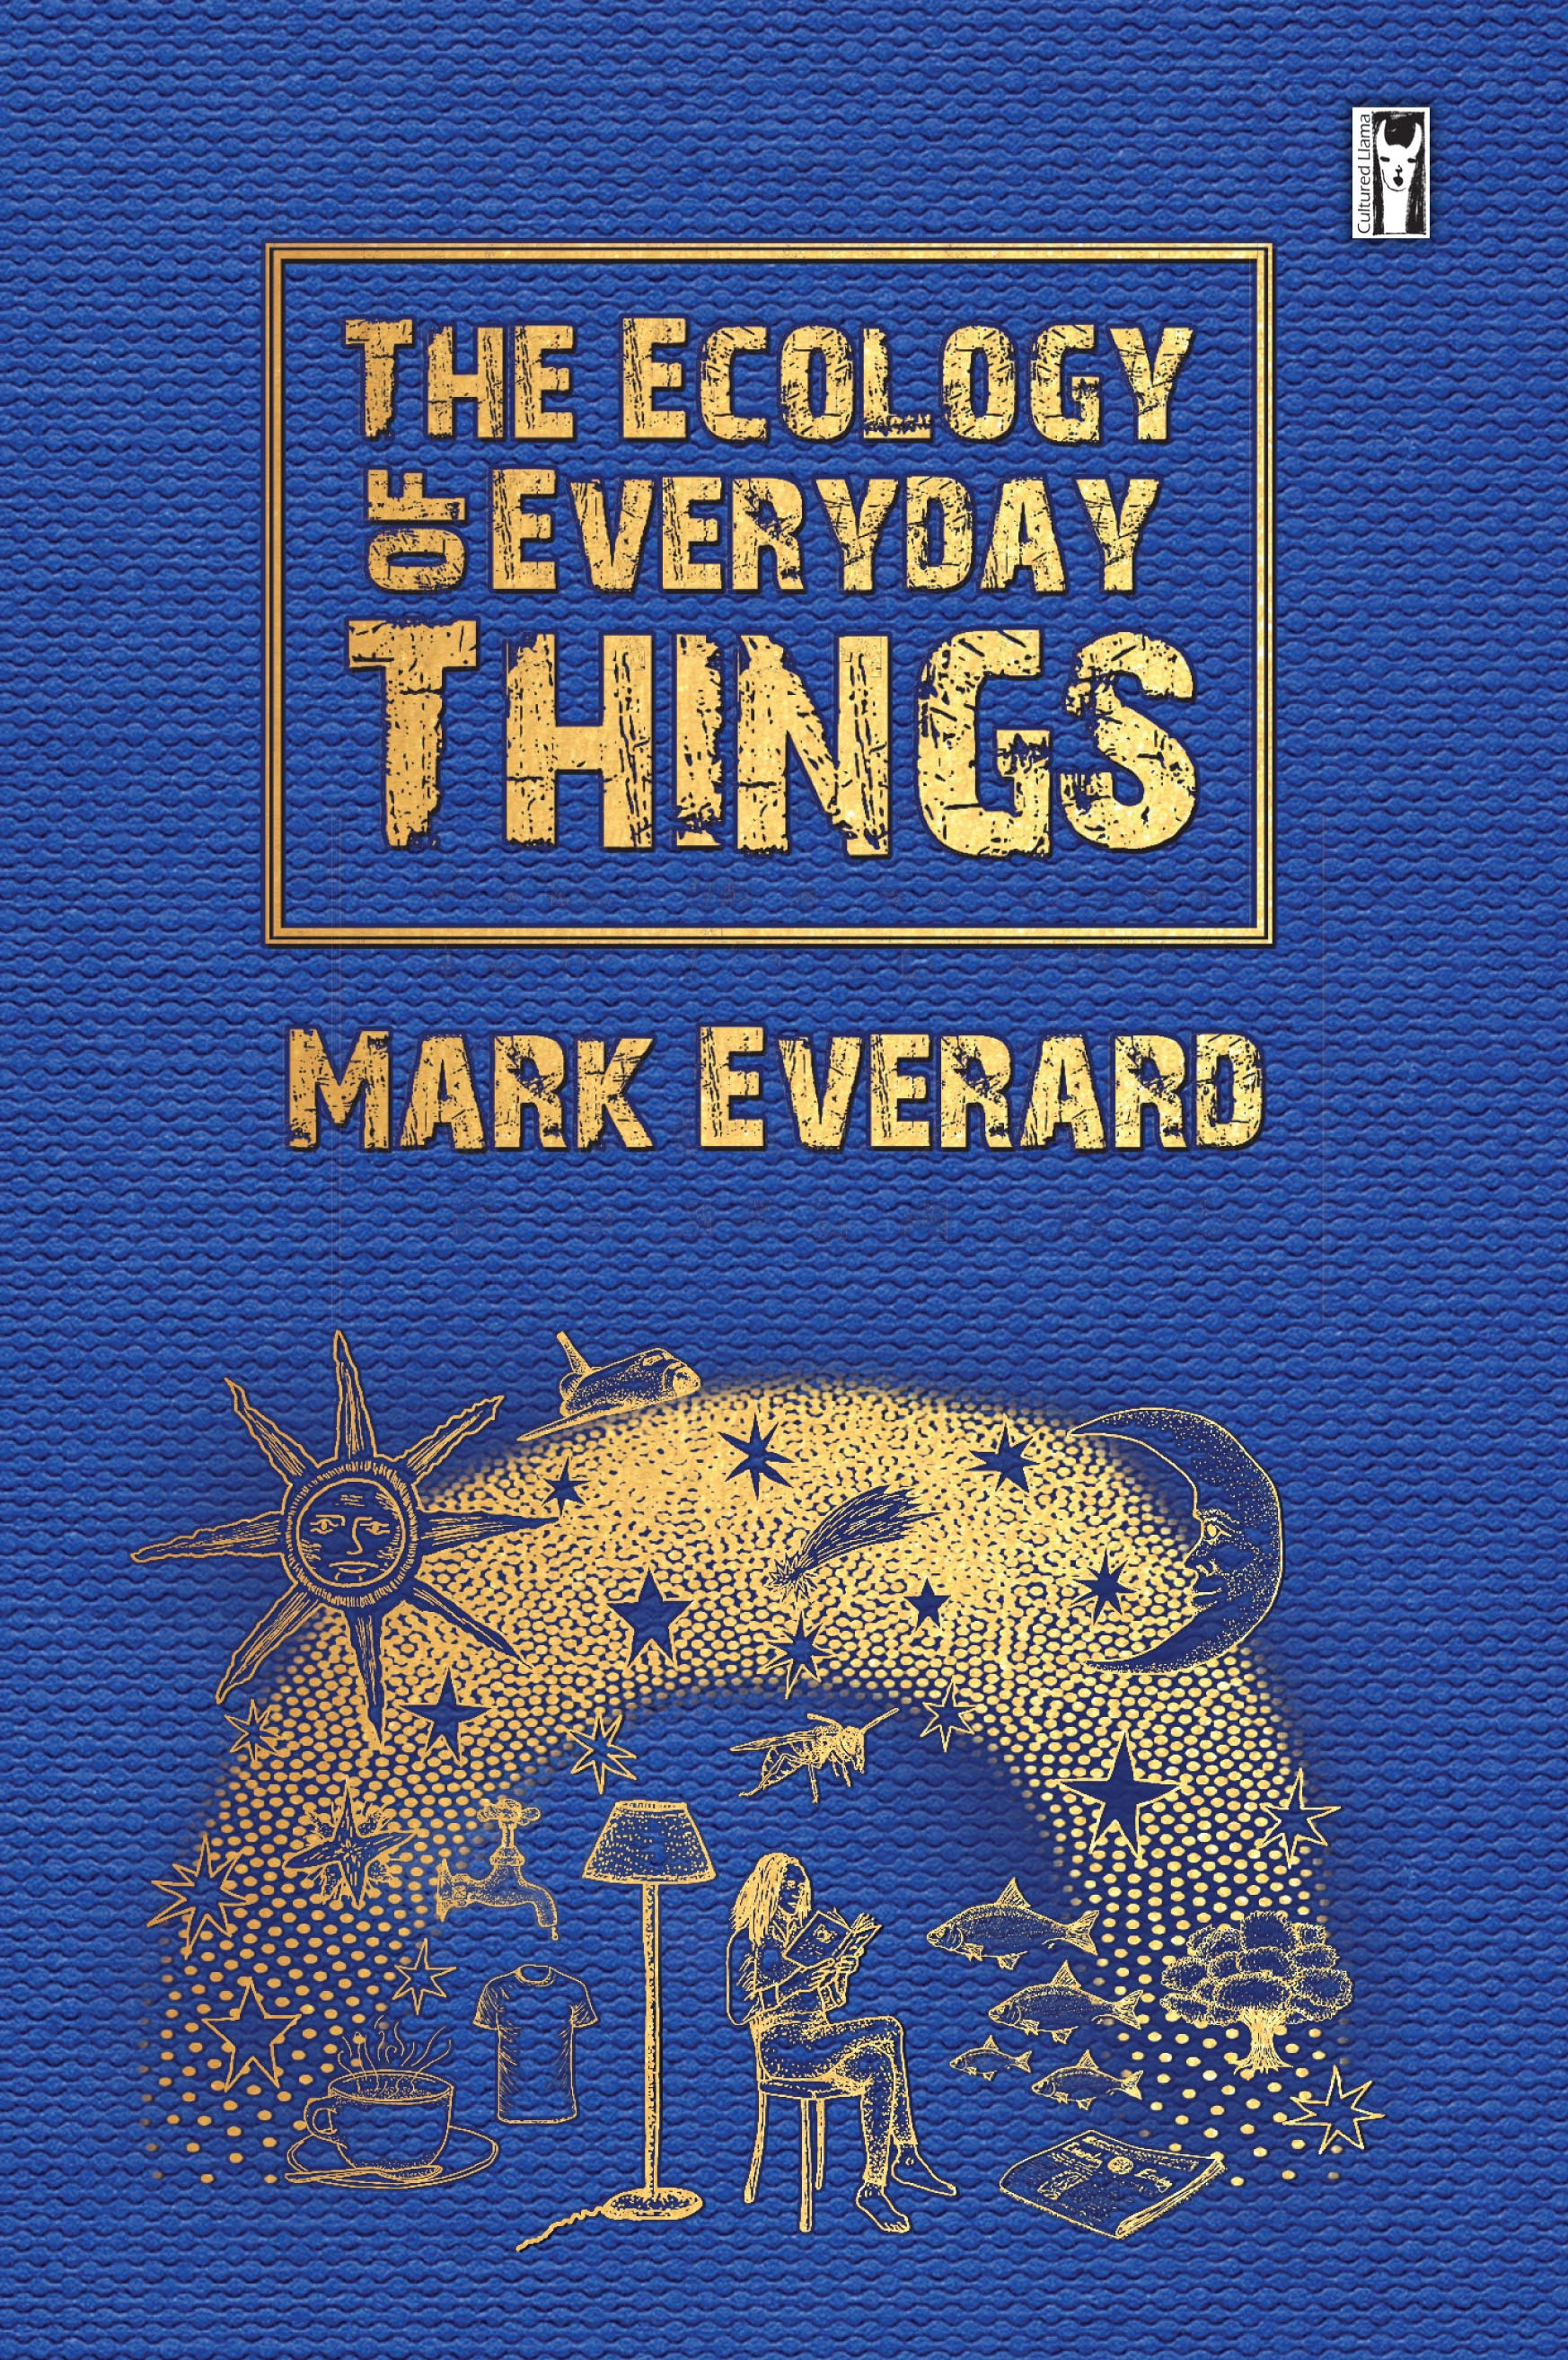 The Ecology of Everyday Things by Mark Everard